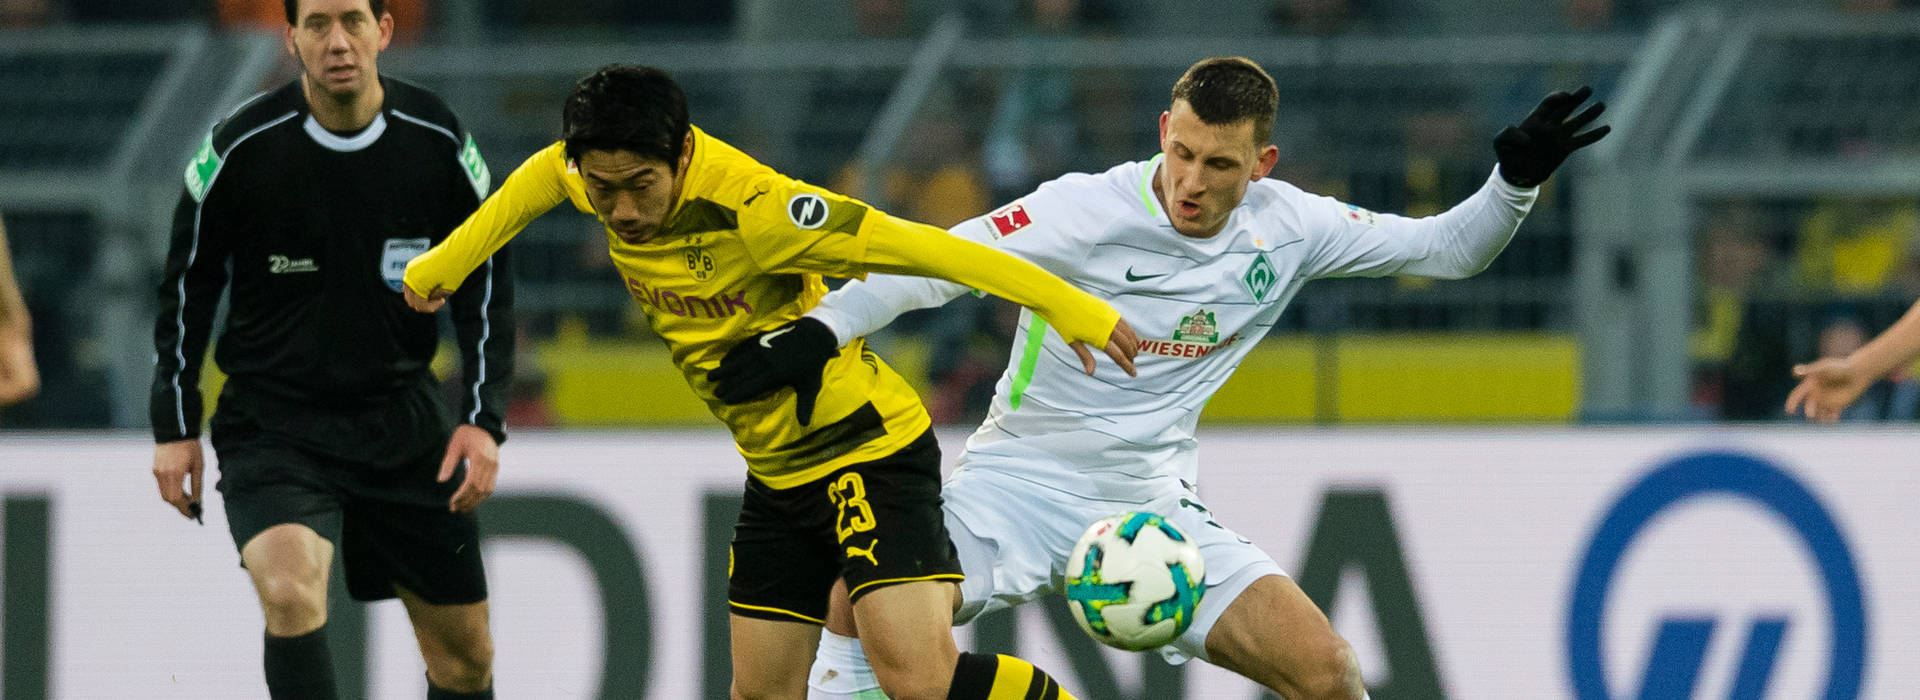 BVB's wait for turnaround continues following 2-1 defeat by Bremen